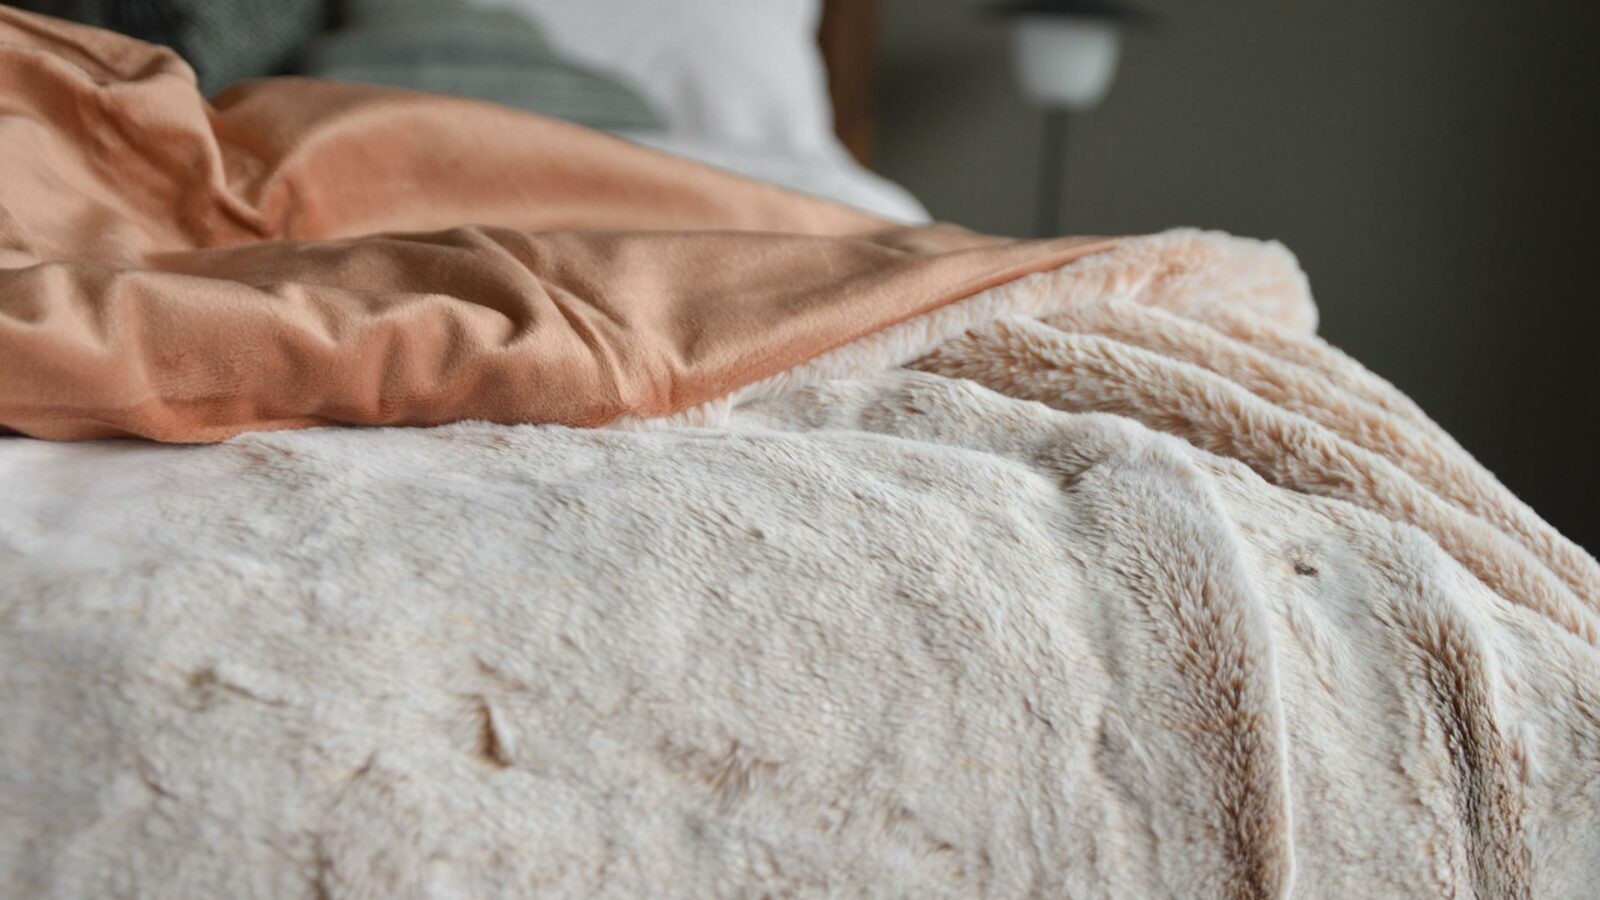 Frosted pink faux fur throw a view showing the reverse salmon pink velveteen fabric